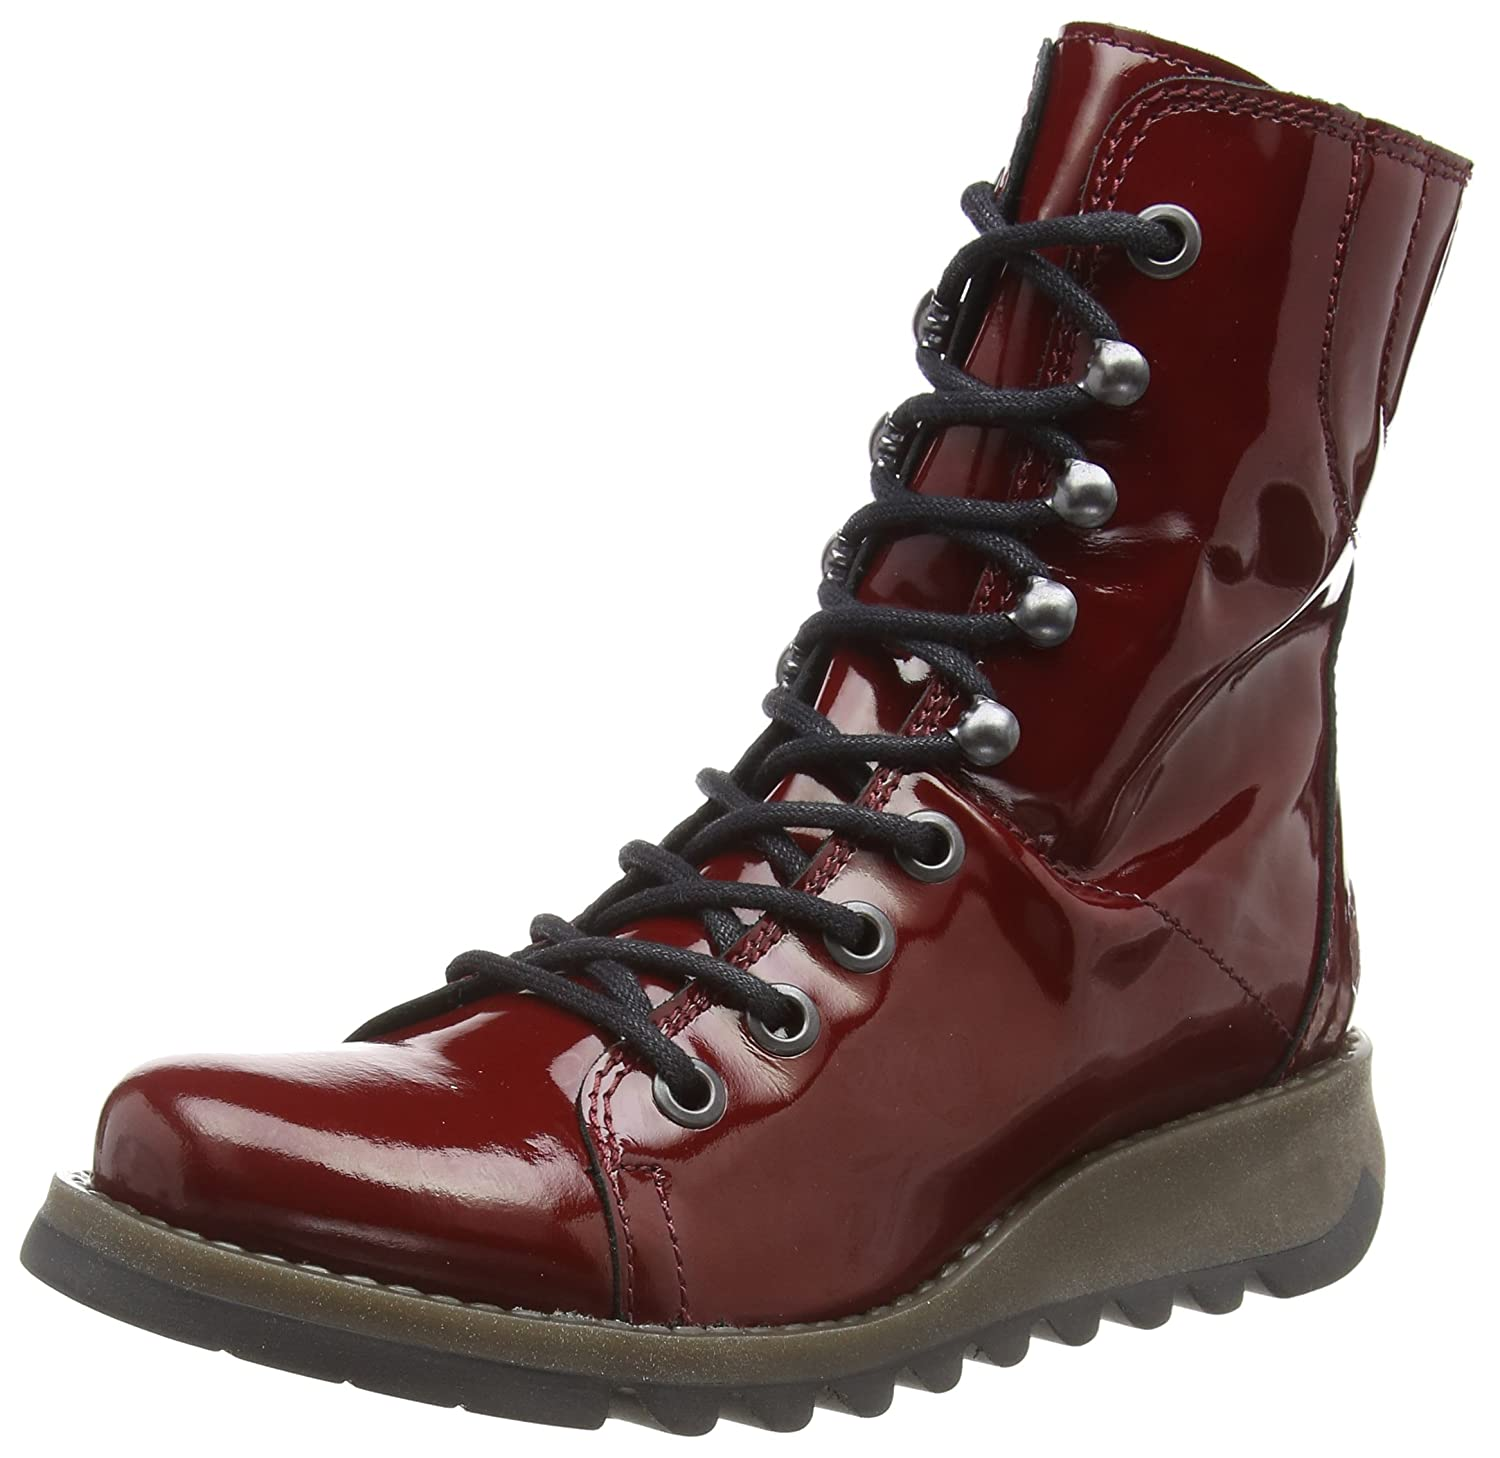 Fly London Same109fly, Bottes 009) London Classiques Femme Rouge Same109fly, (Burgundy 009) 590deec - conorscully.space